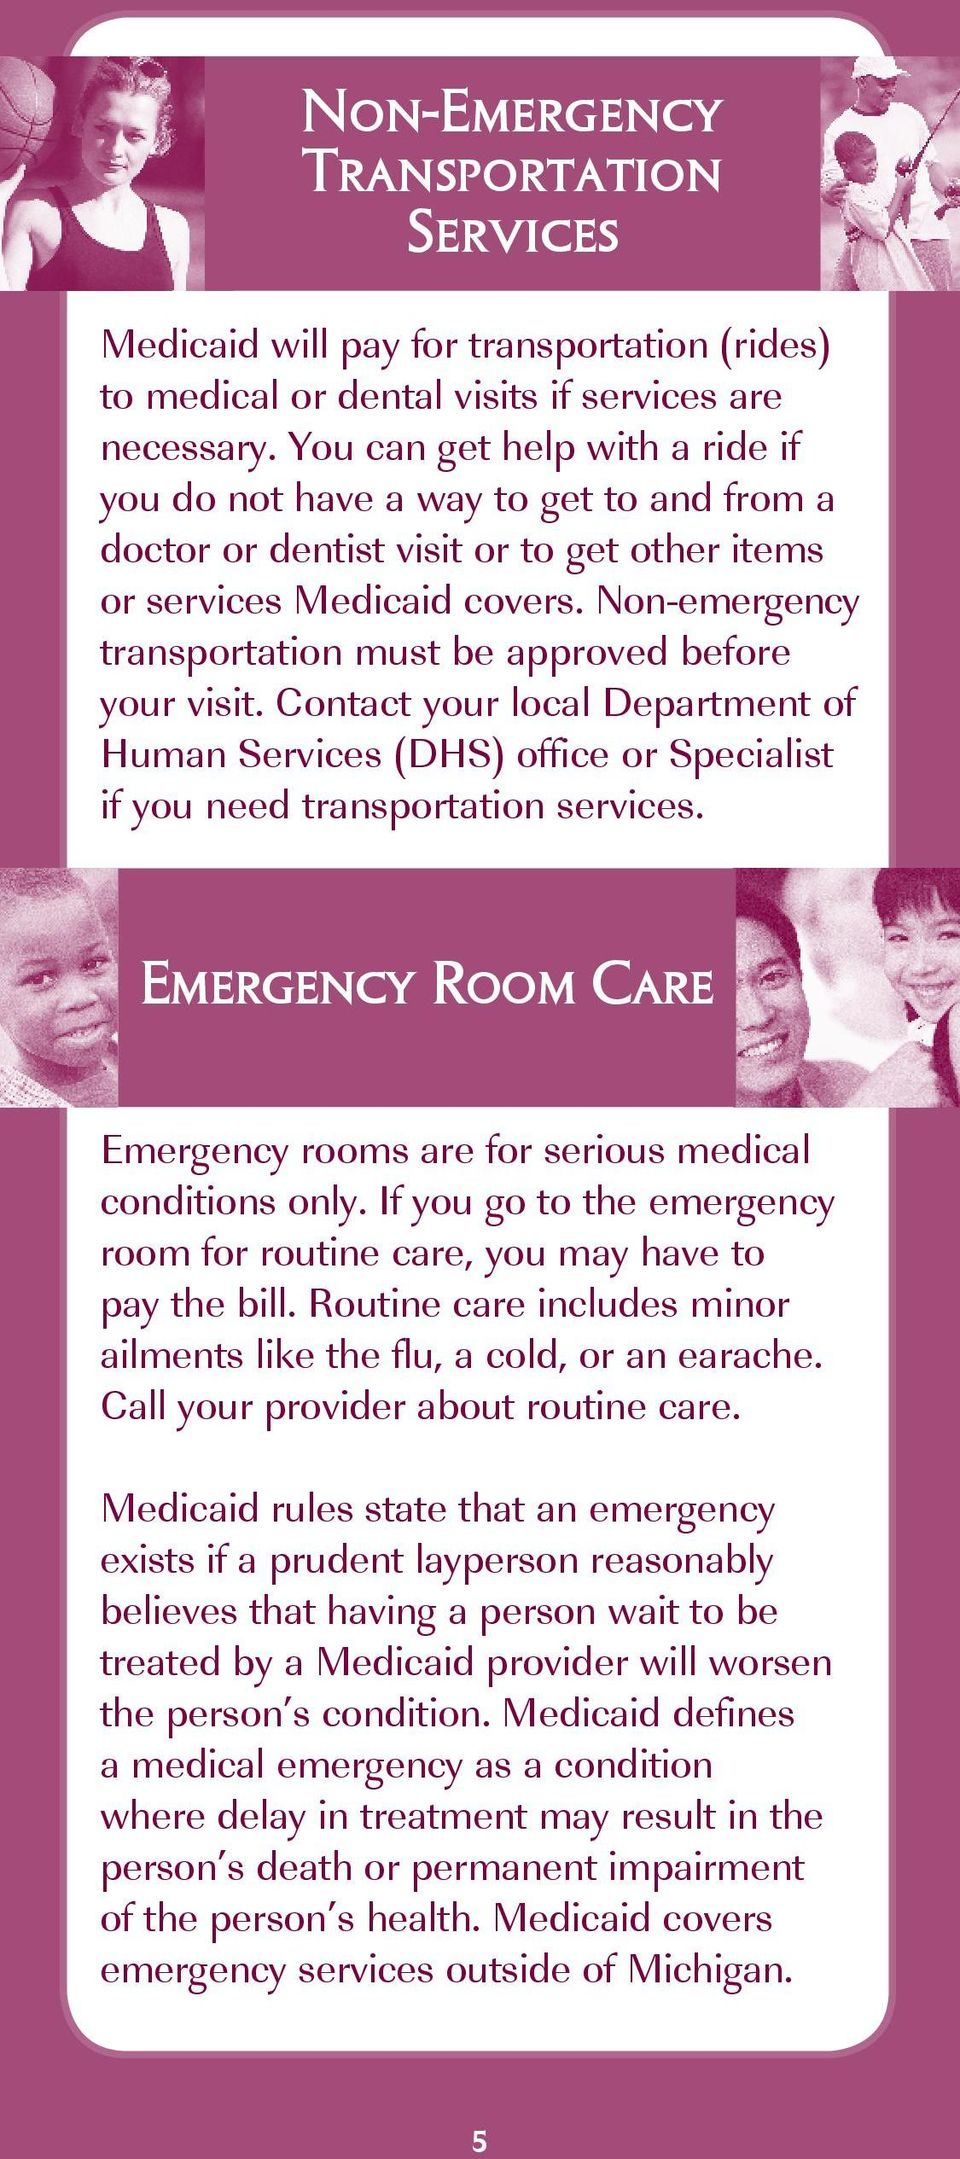 Non-emergency transportation must be approved before your visit. Contact your local Department of Human Services (DHS) office or Specialist if you need transportation services.